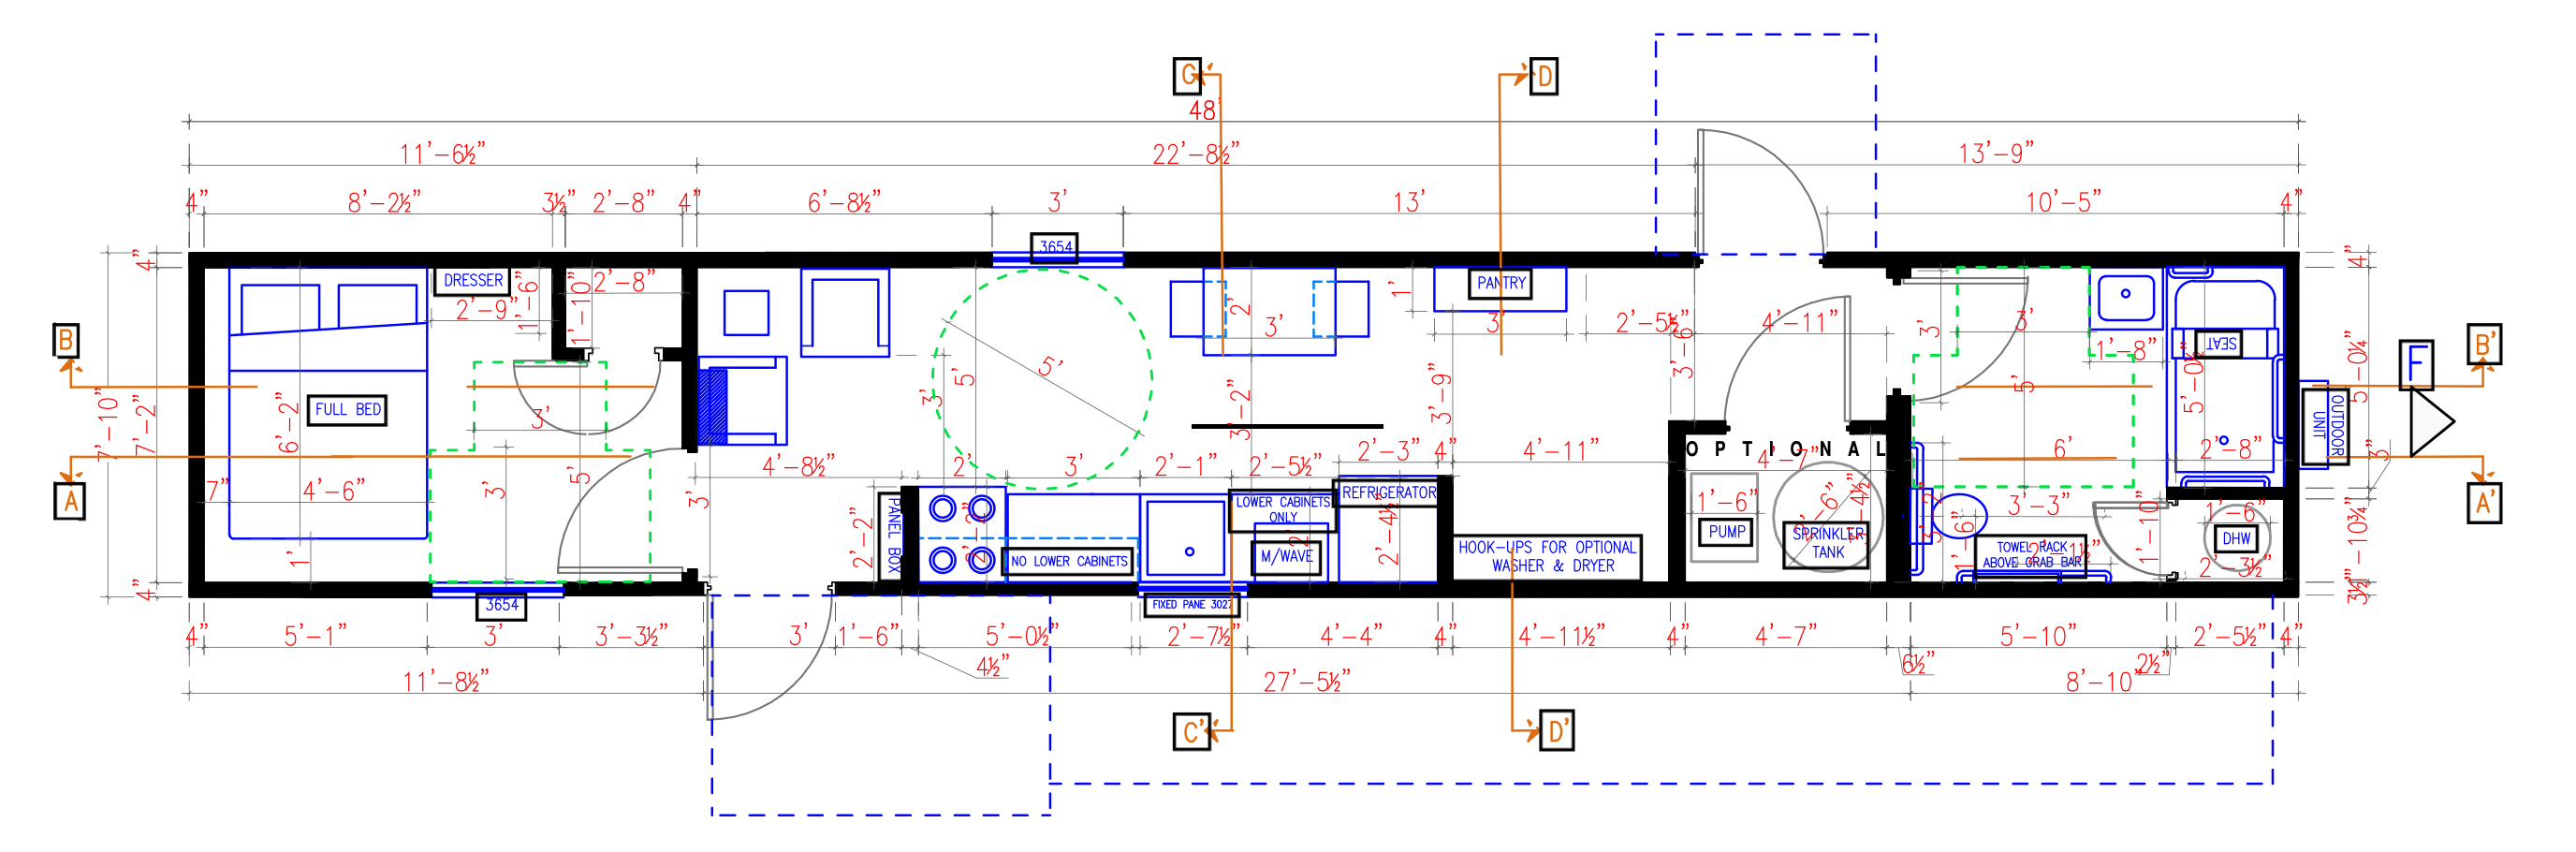 A plan of a typical mobile home unit showing measurements, room designations, and appliances